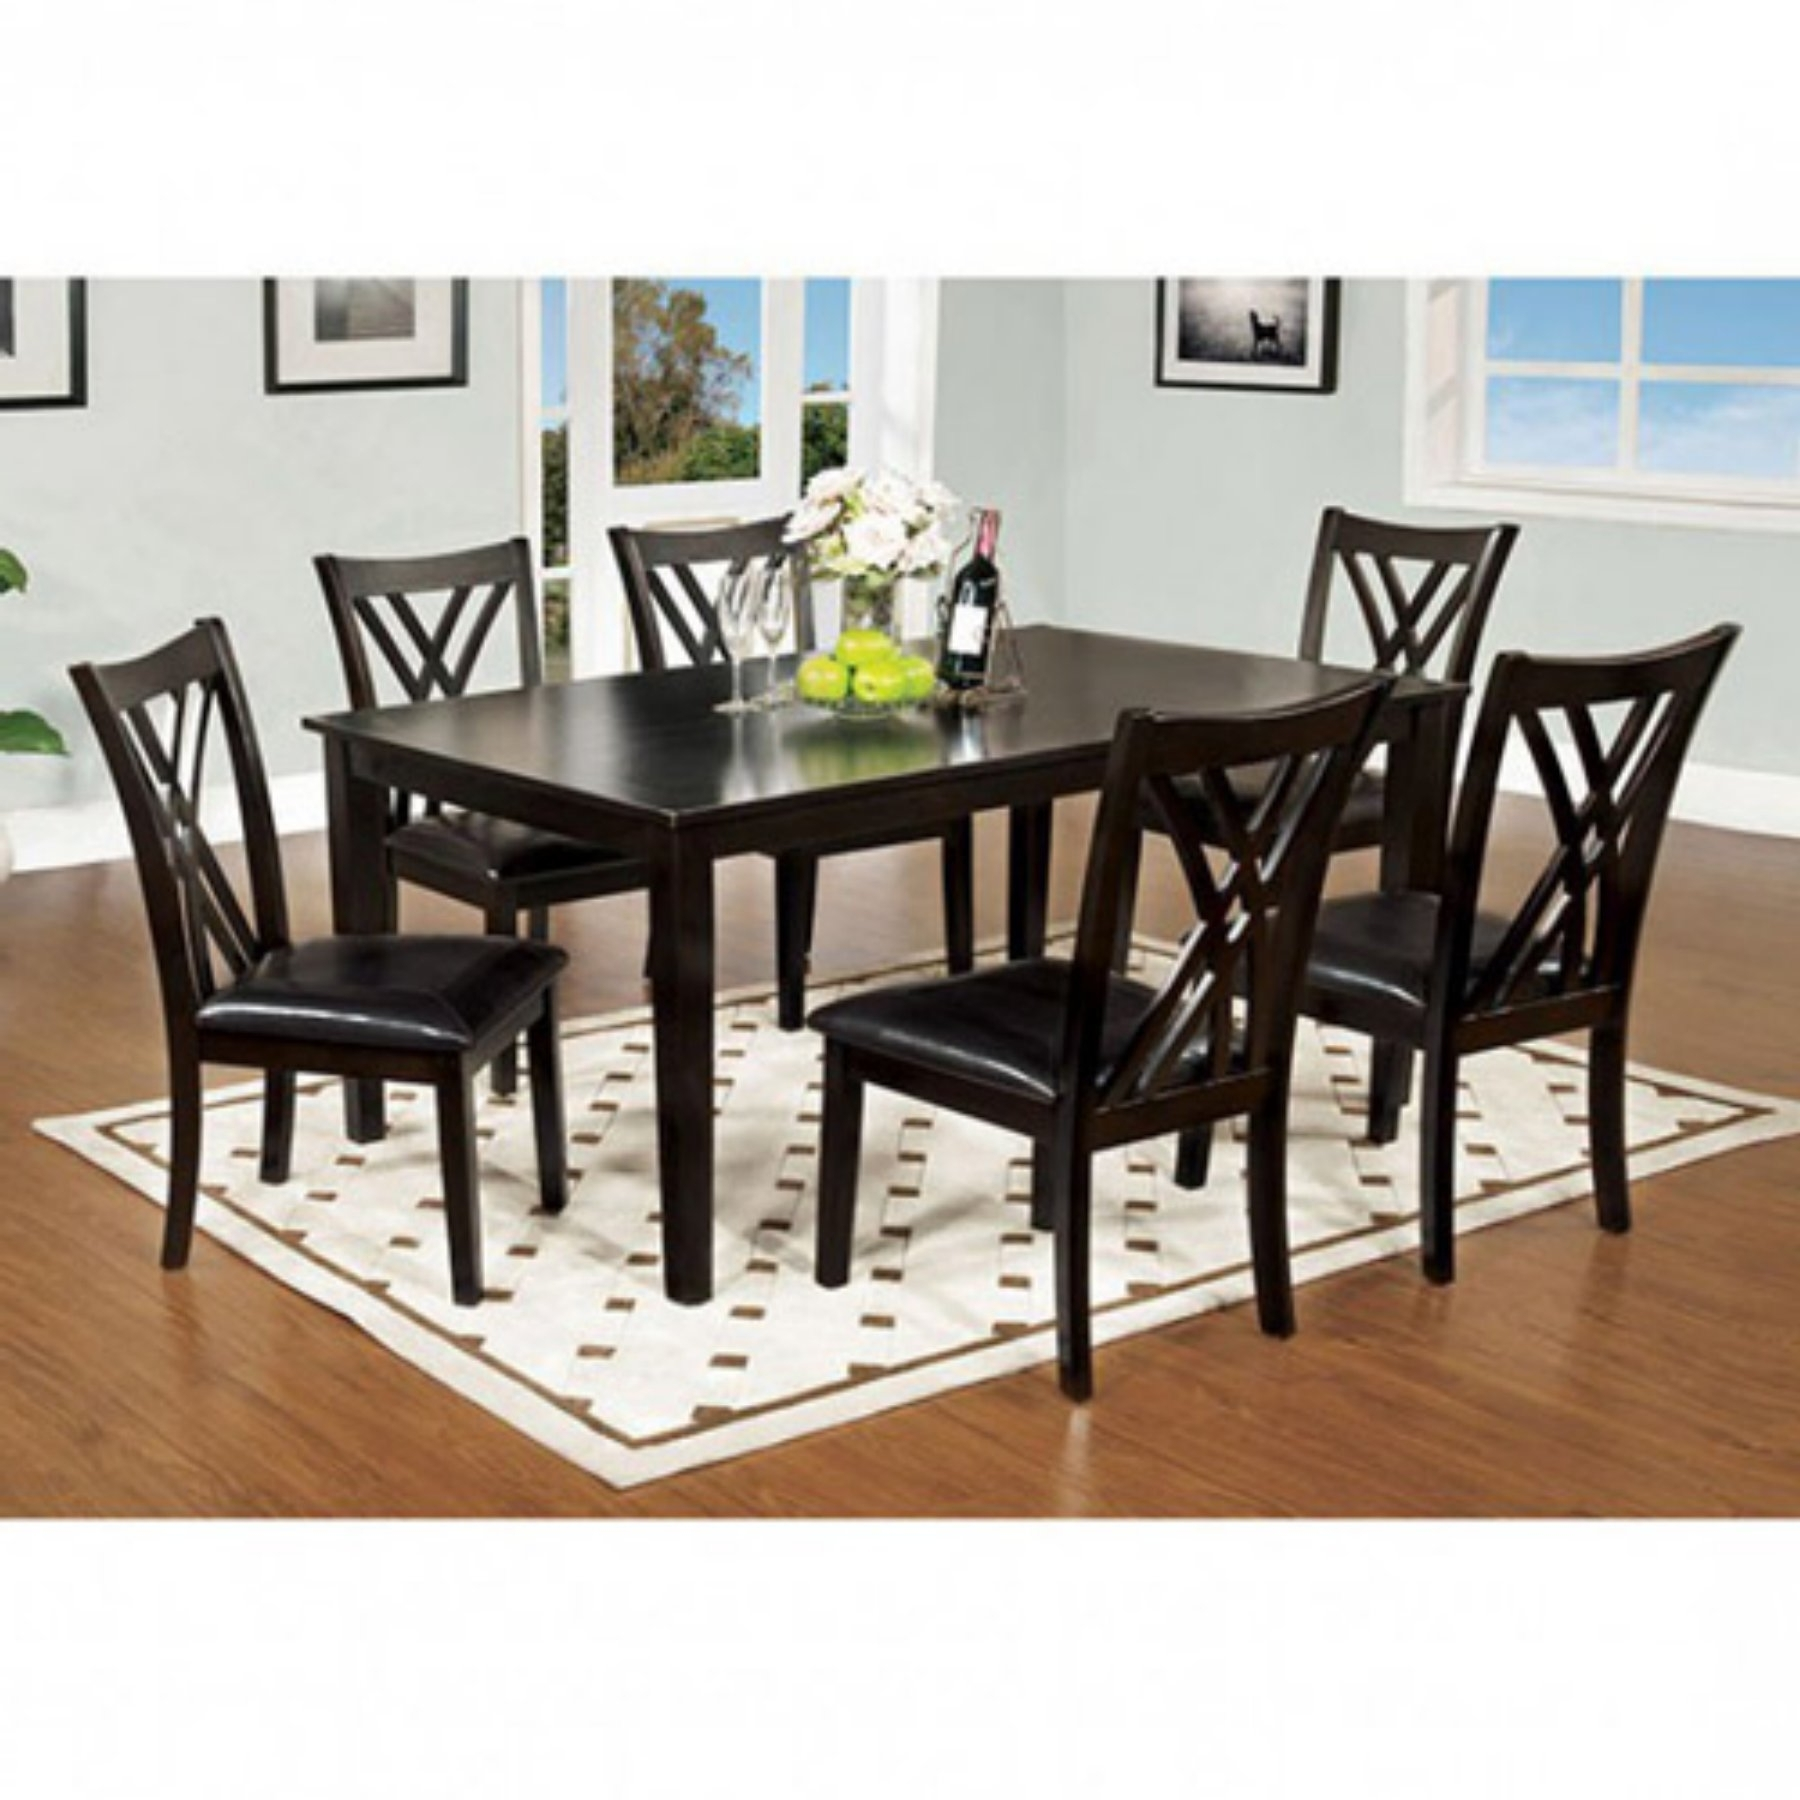 Favorite Laurent 7 Piece Rectangle Dining Sets With Wood And Host Chairs With Regard To Benzara Springhill Enticing 7 Piece Rectangular Dining Table Set In (View 11 of 25)